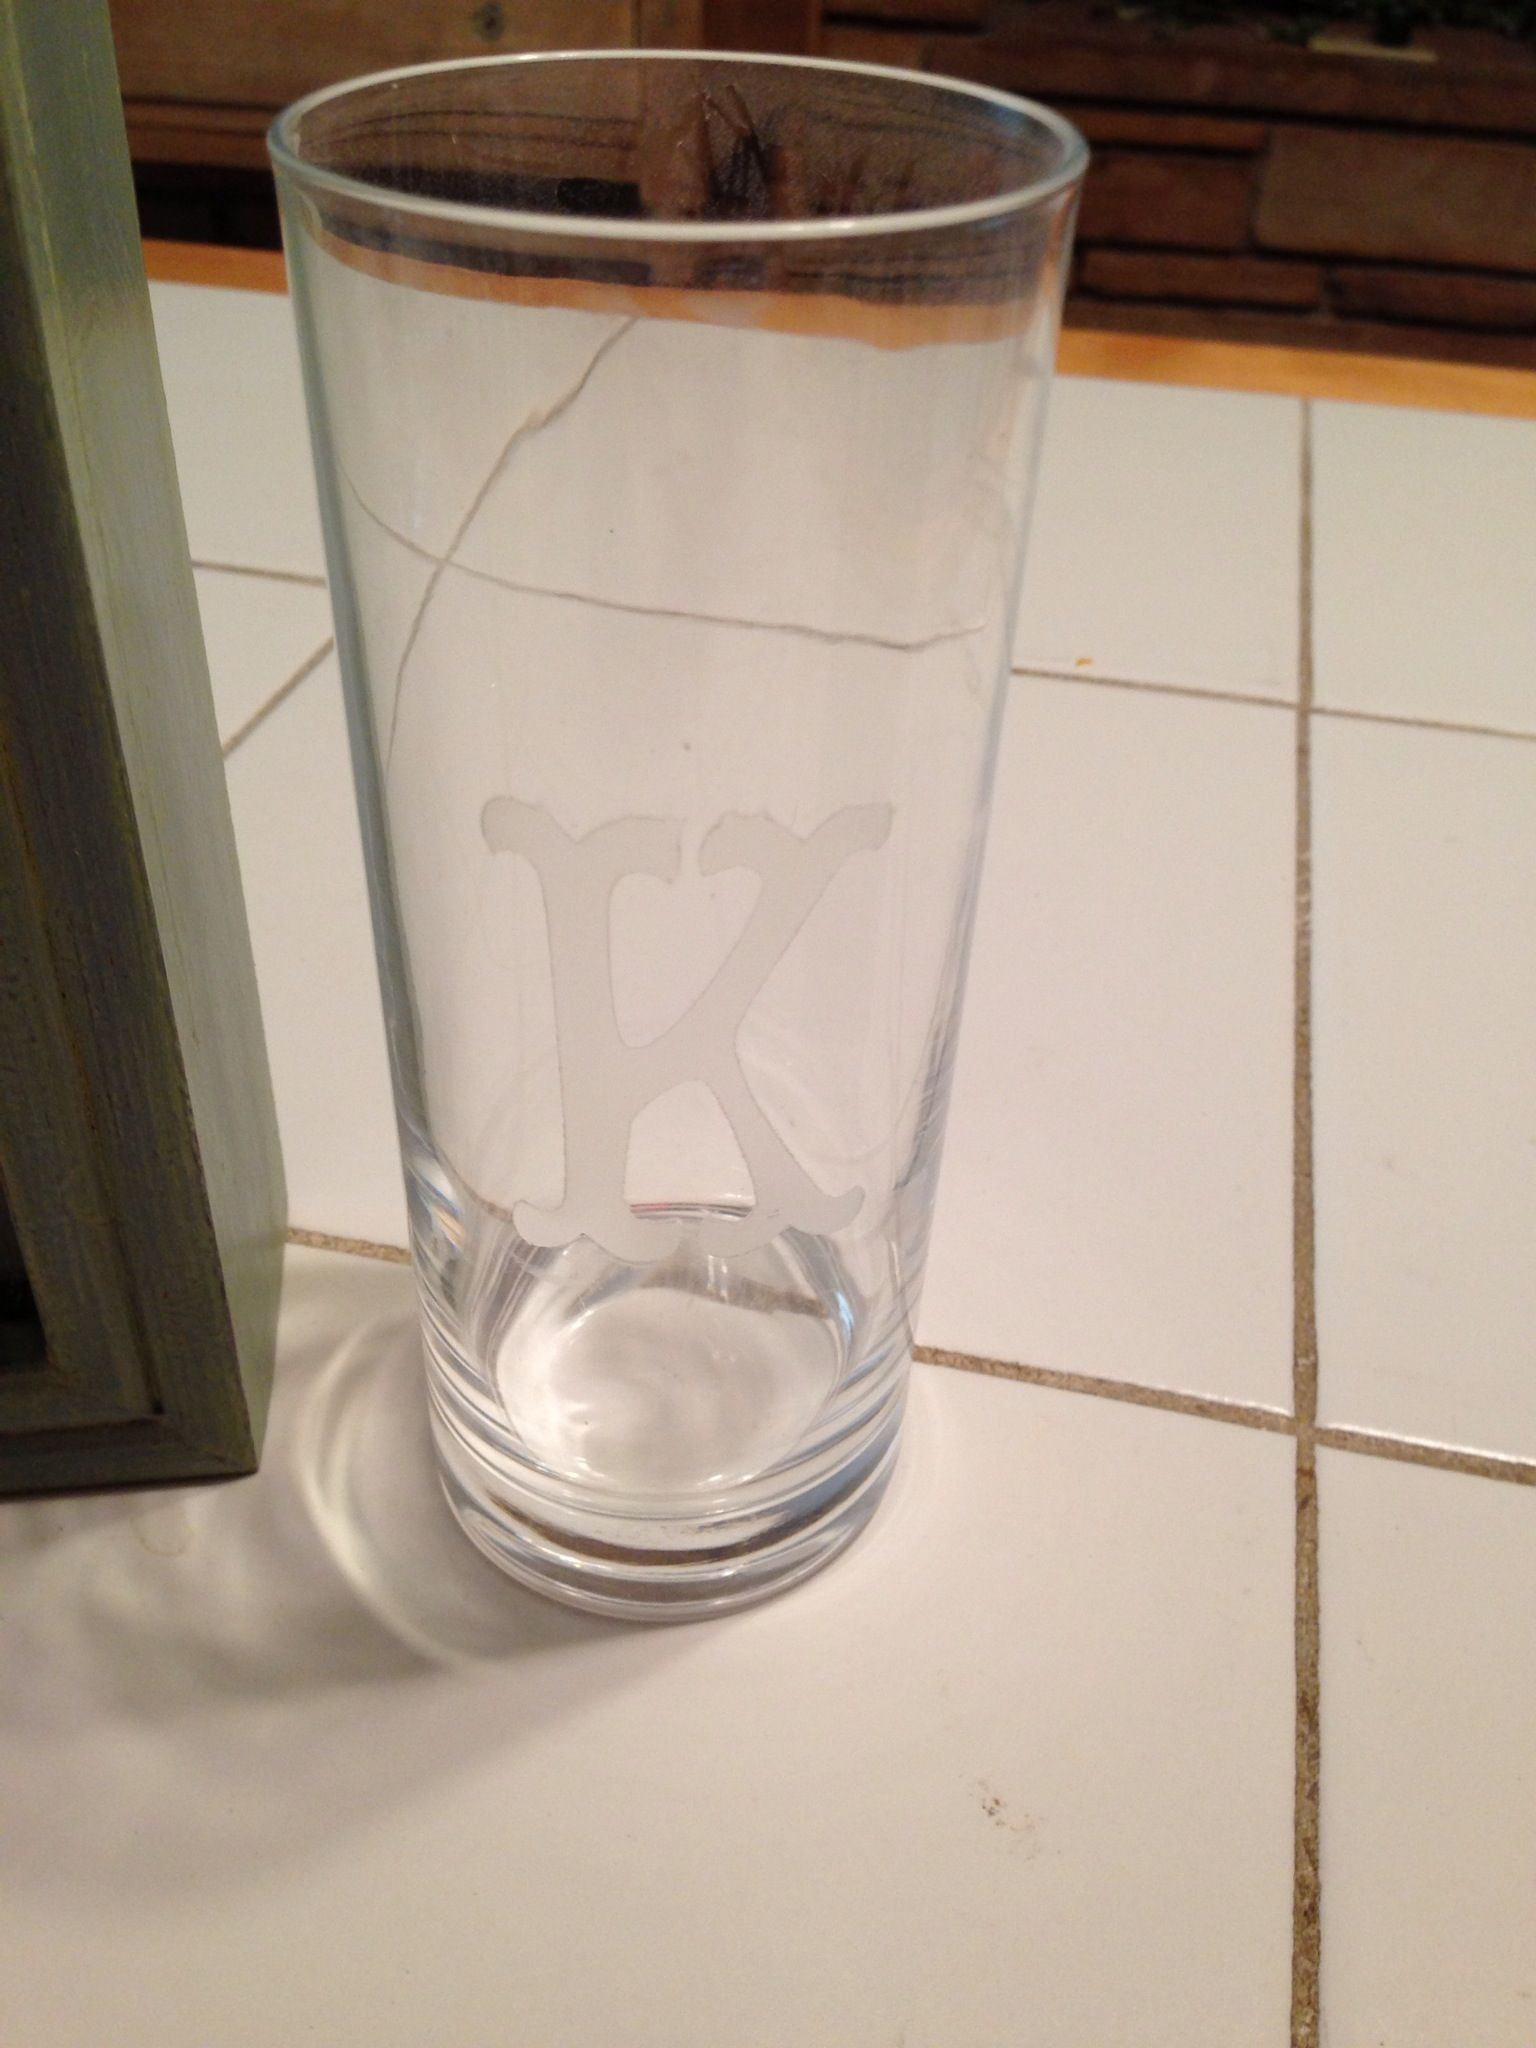 Glass for the unity sand - frosted spray paint initial